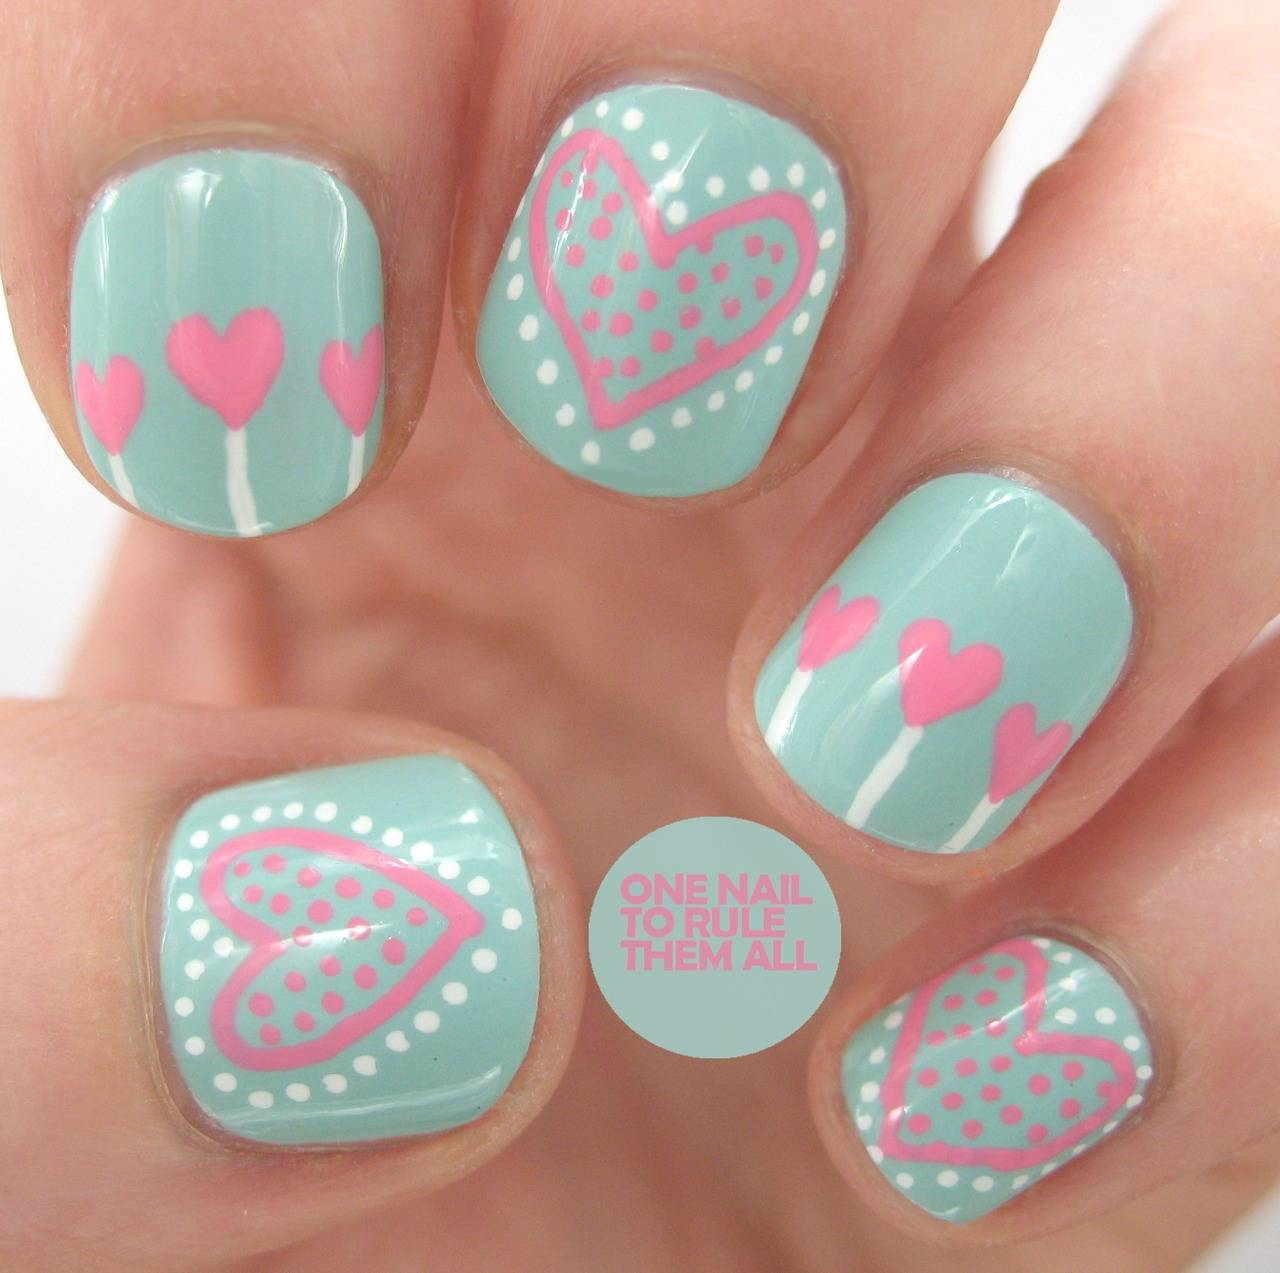 Green Nails With Pink Hearts And Dots Design Nail Art - 75 Most Stylish Pink Heart Nail Art Design Ideas